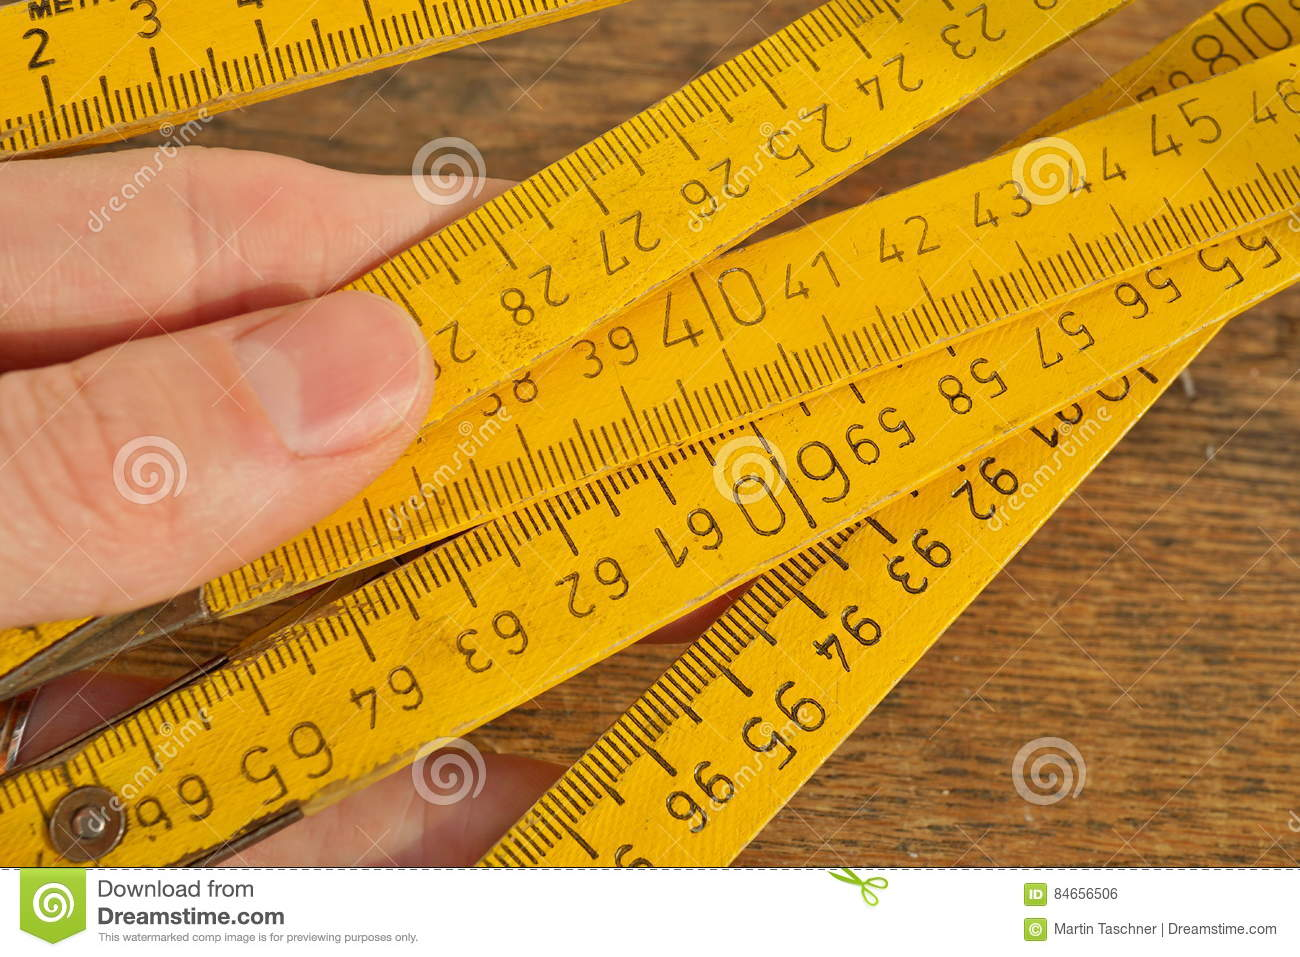 Male hand holding yellow folding meter on the wooden background as a symbol of precision